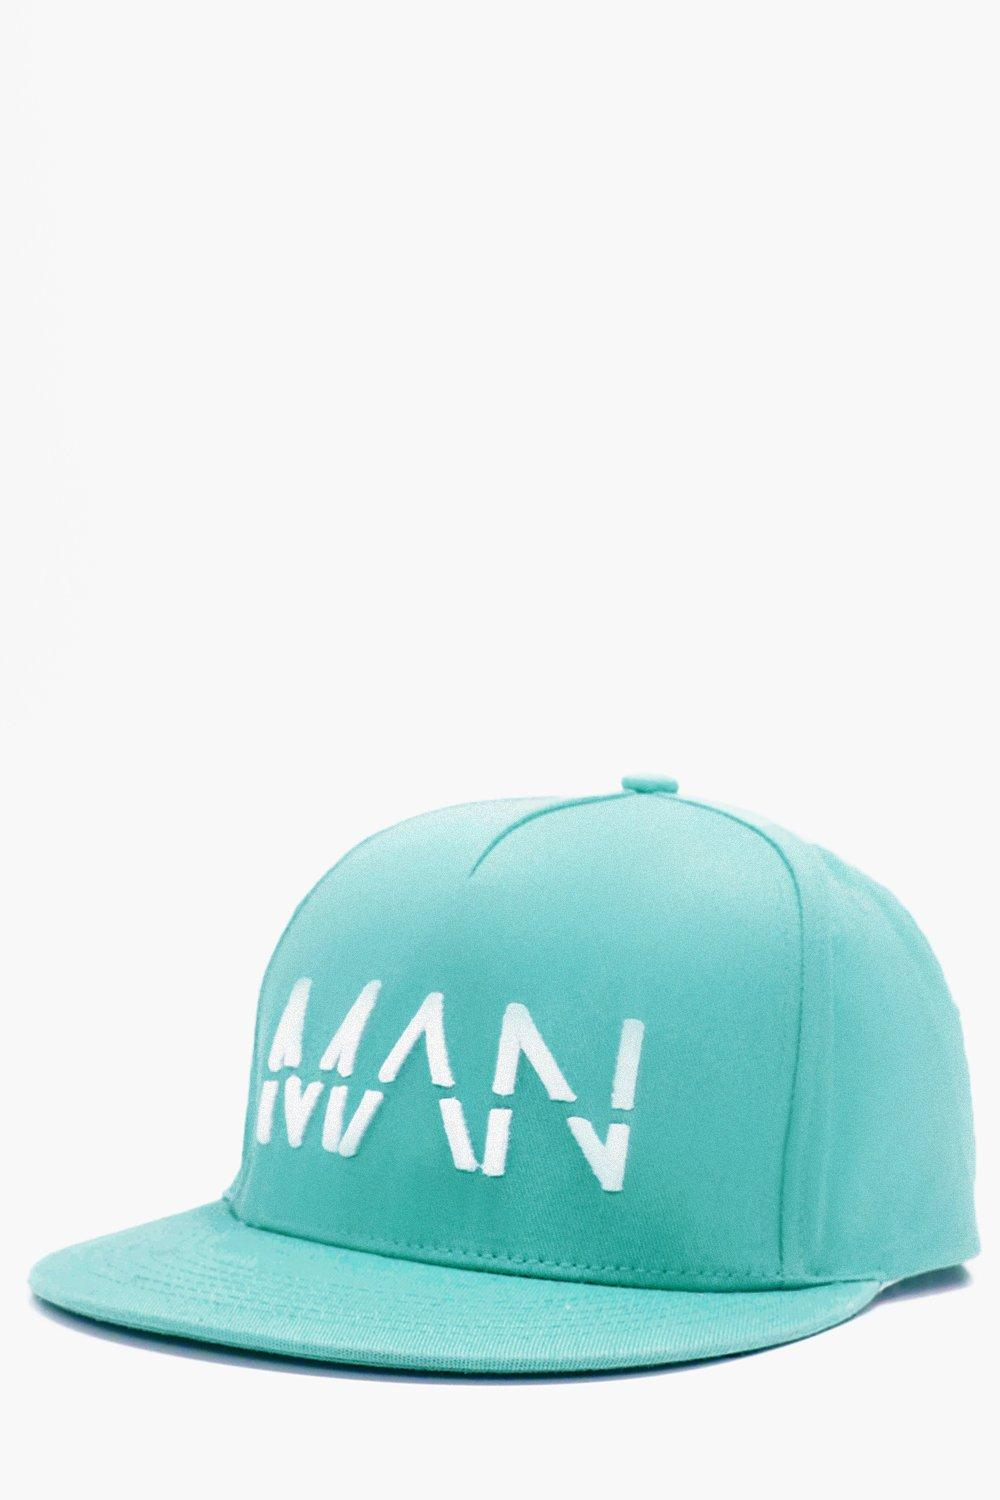 Embroidered Snapback - mint - MAN Embroidered Snap